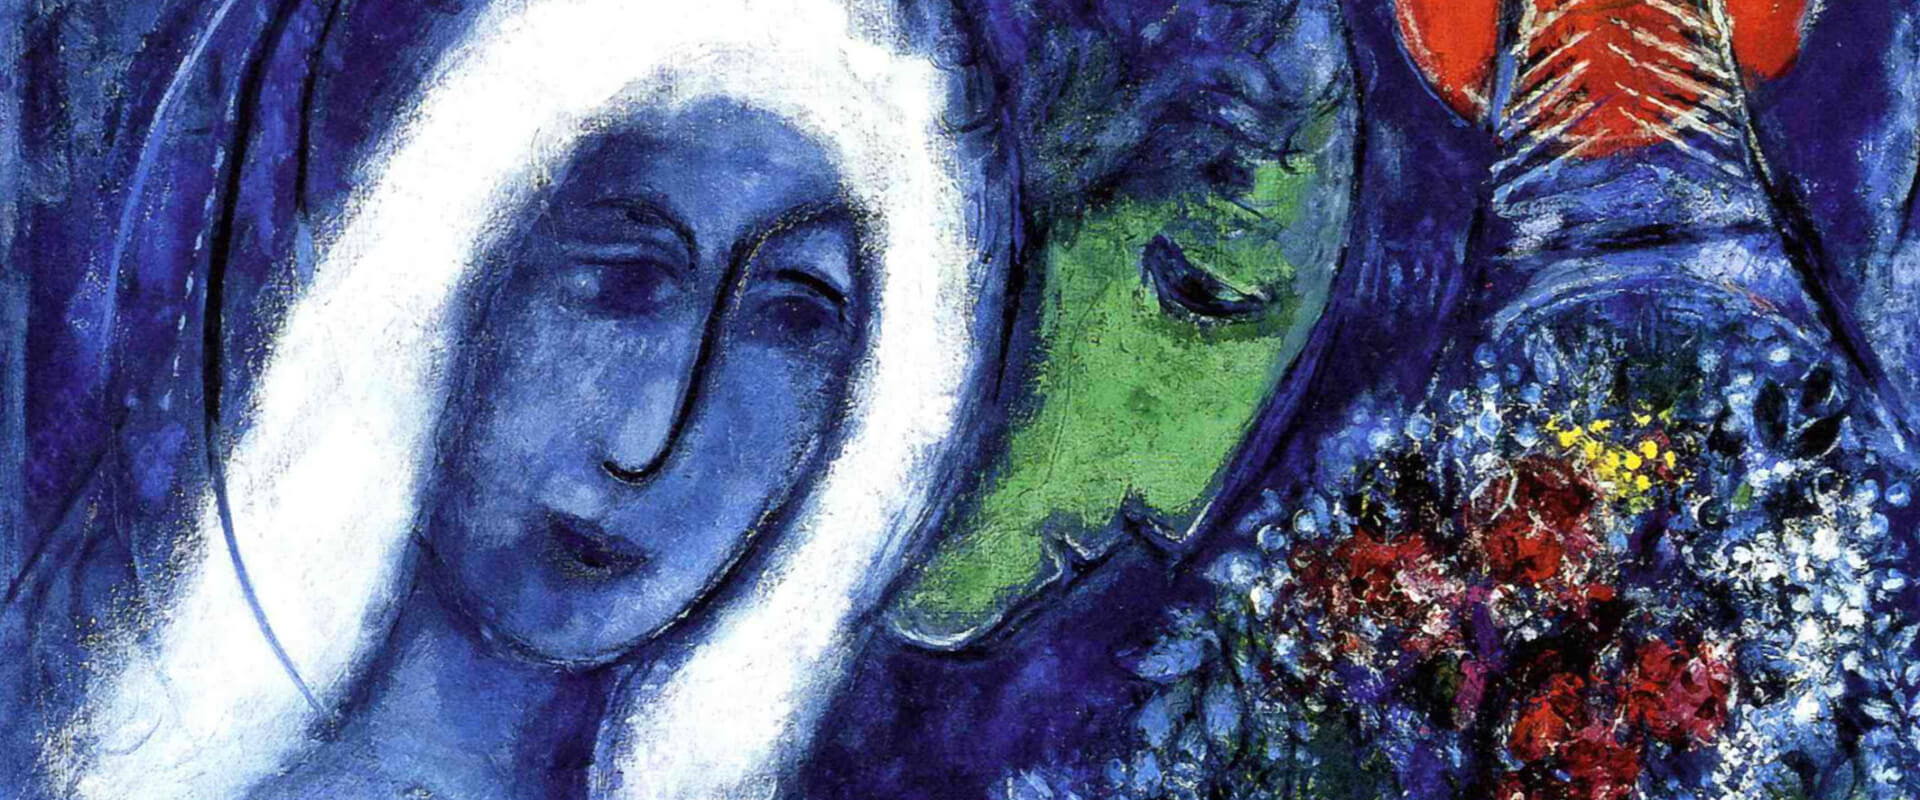 Marc Chagall Artworks Collection | Buy Posters, Frames, Canvas, Digital Art & Large Size Prints Of The Famous Modern Master's Artworks